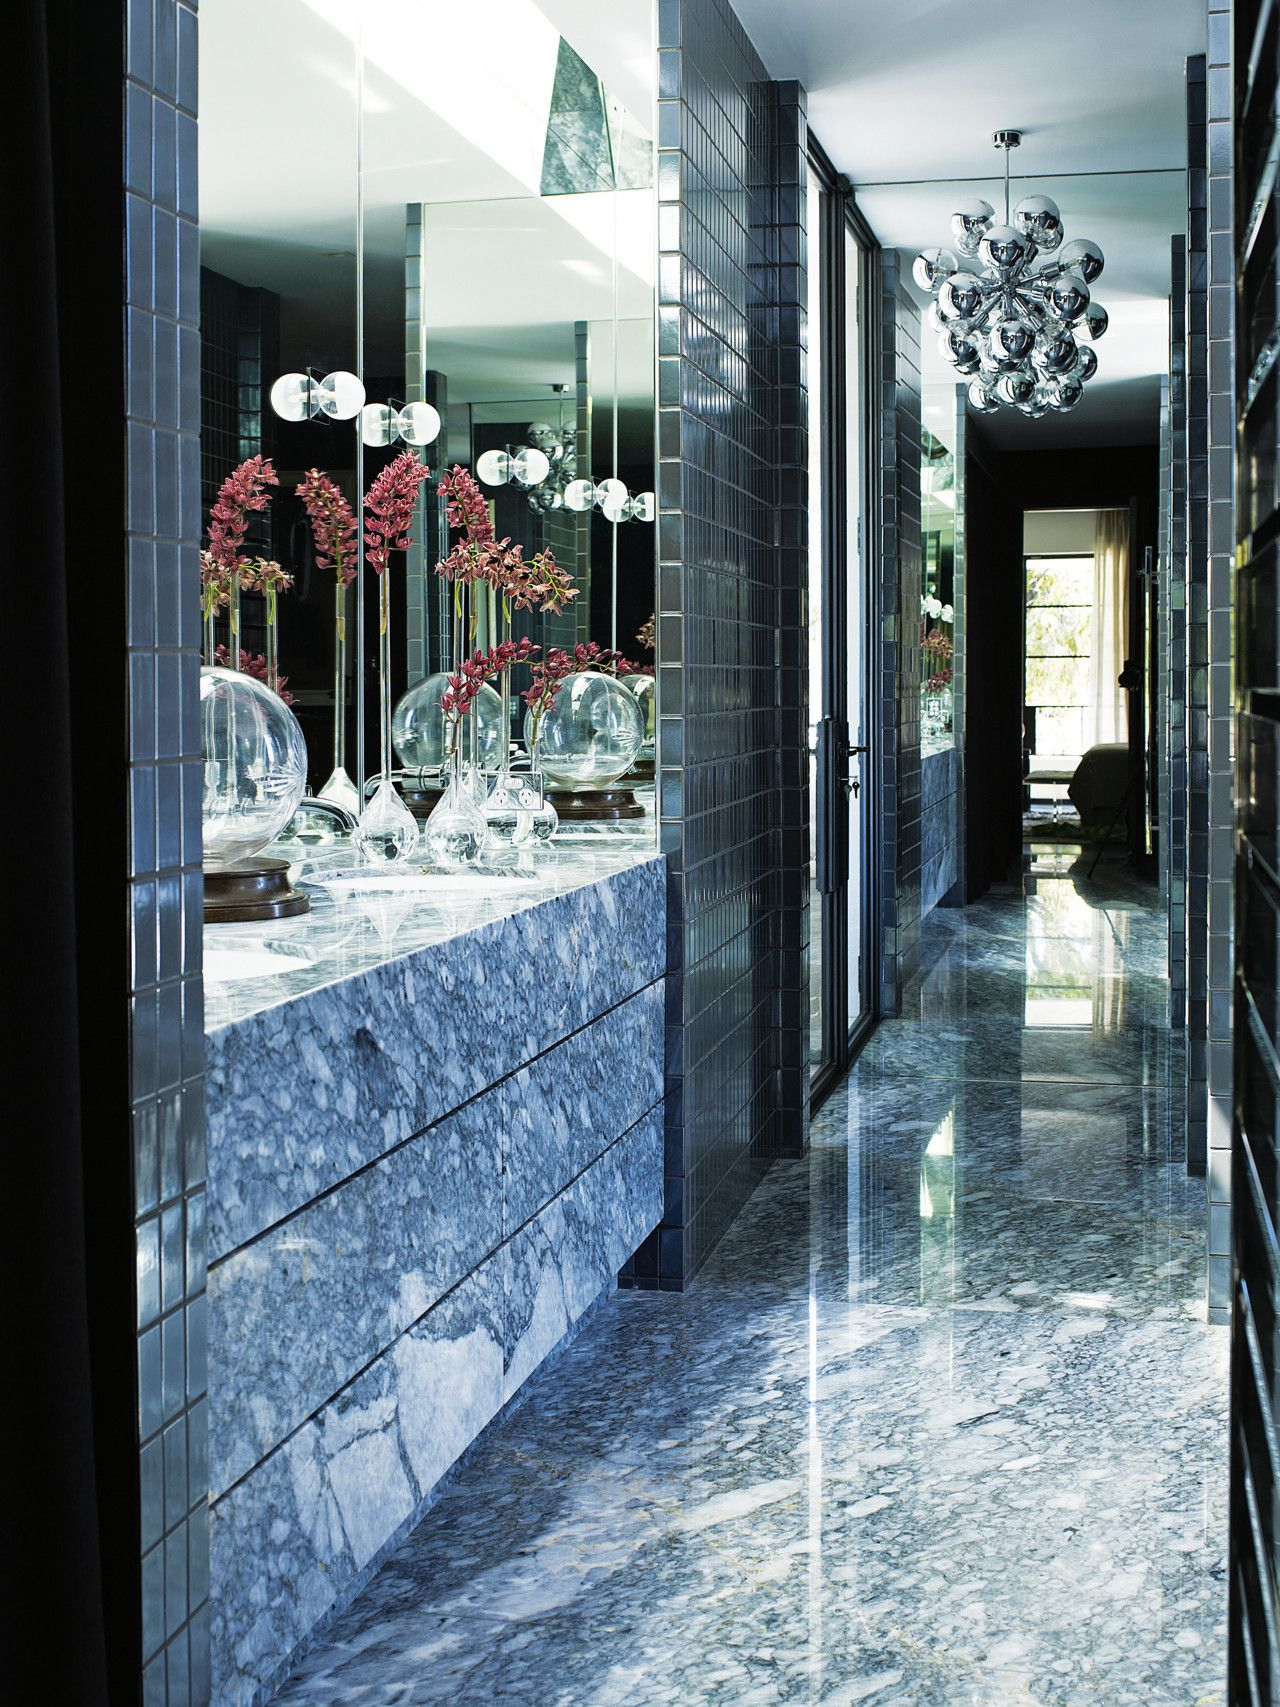 Interiors An Opulent 80'sinspired Home  Perth Lyon And Interiors Mesmerizing Designer Bathrooms Perth Decorating Design